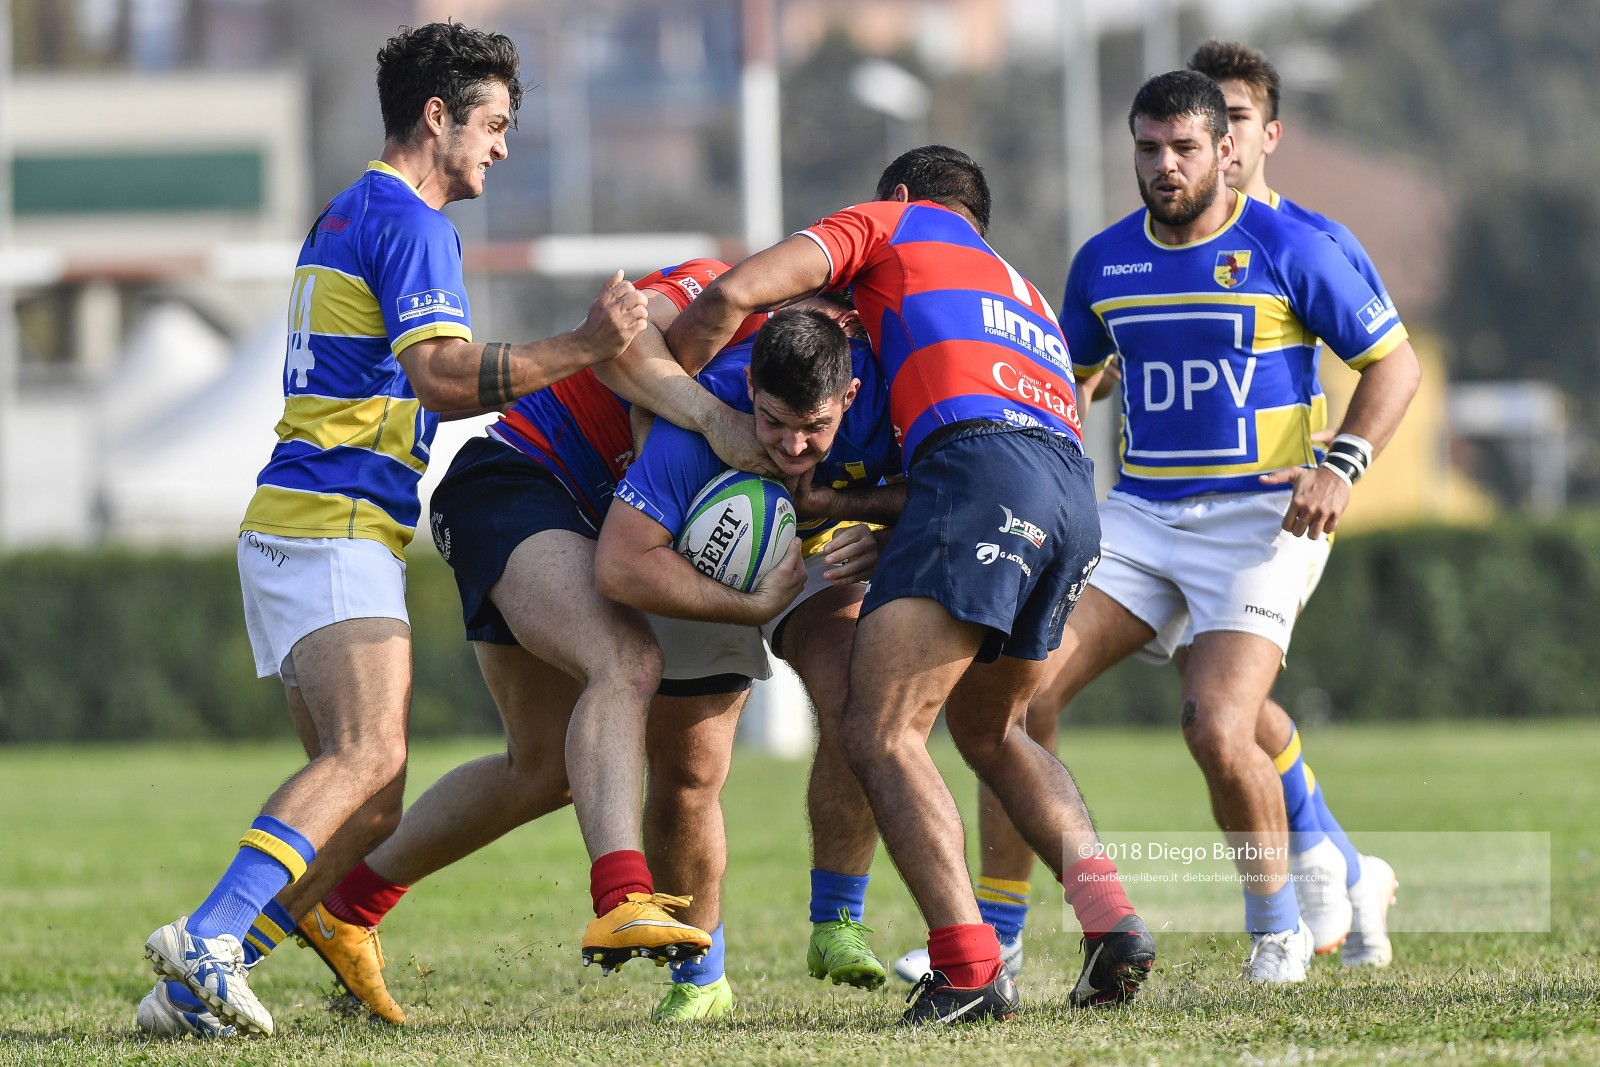 Serie A: TK Group VII Rugby Torino - CUS Milano Rugby